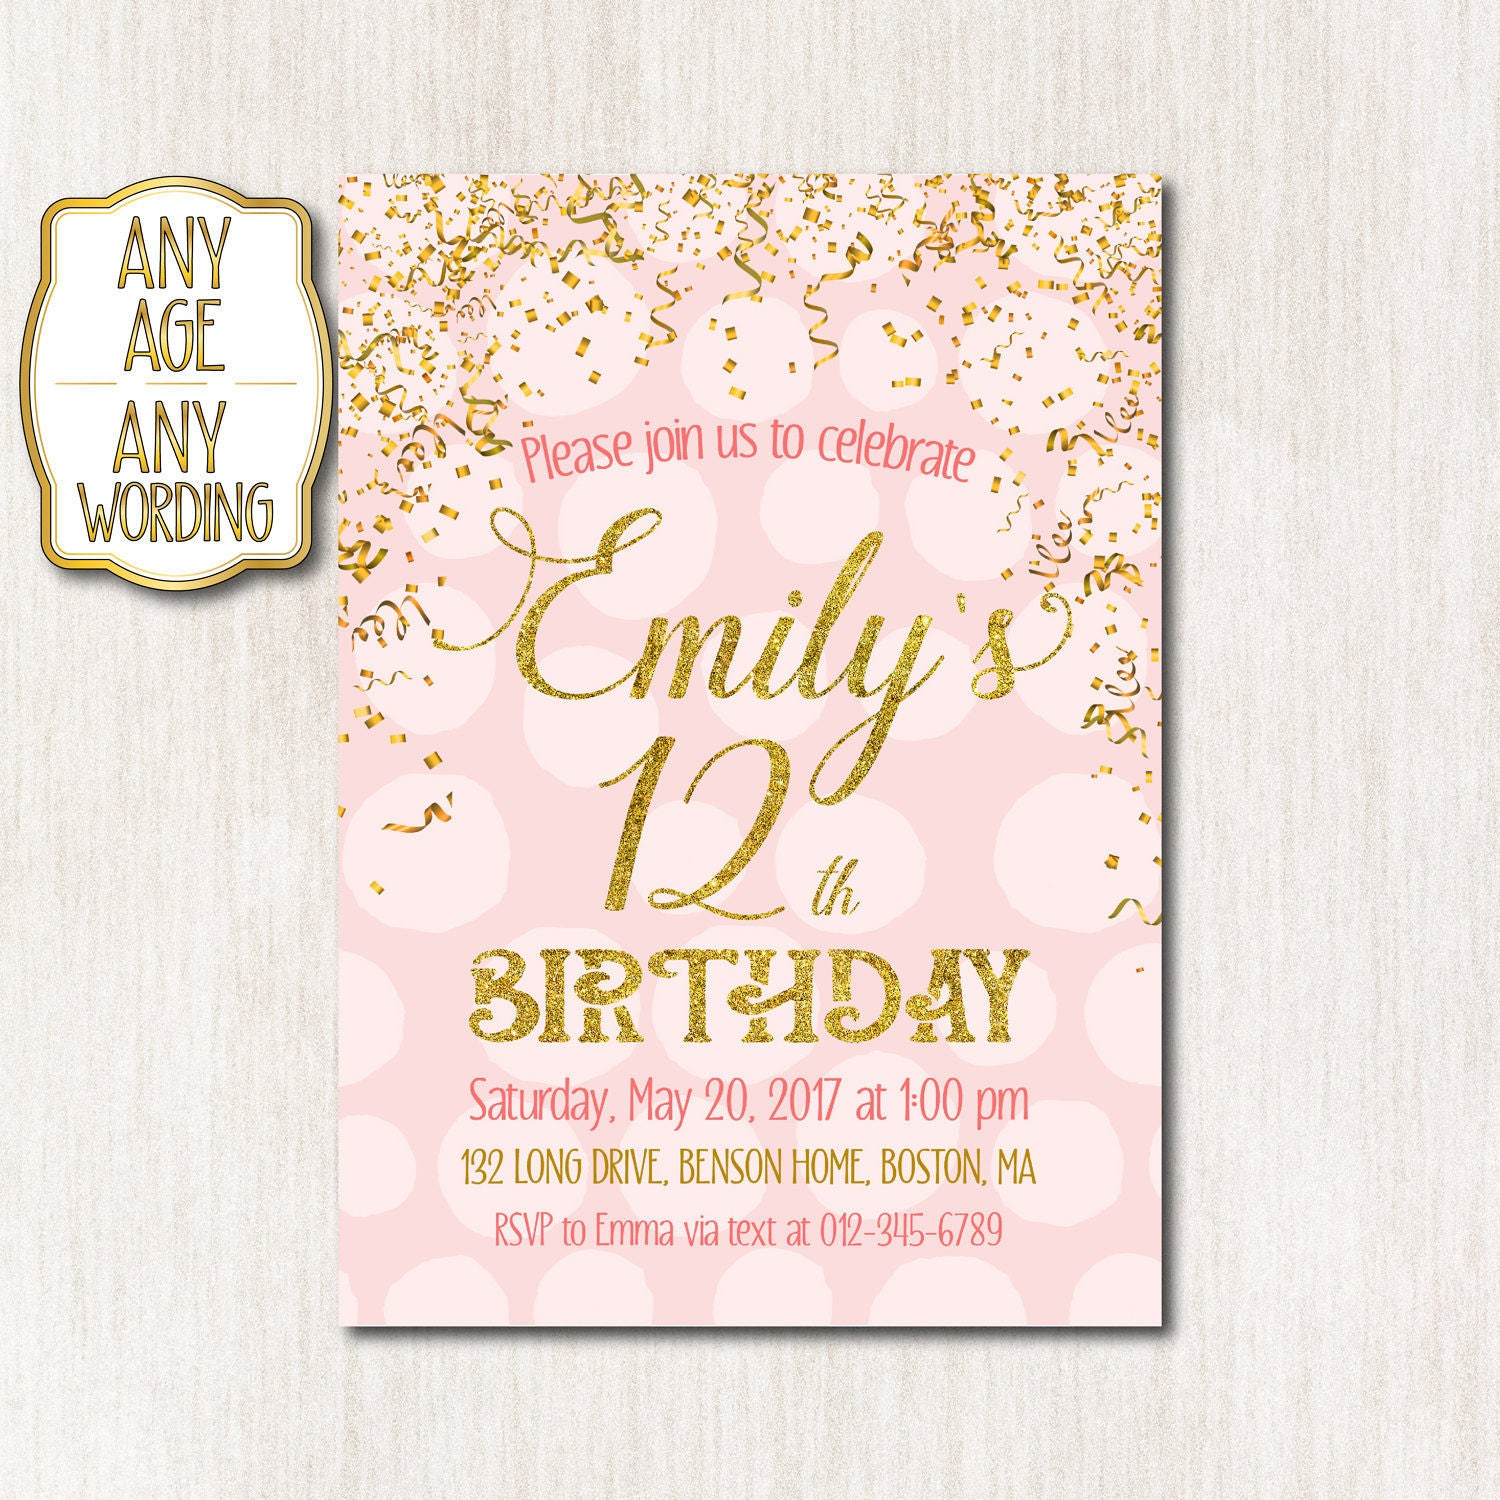 Rainbow Party Invitation Wording was Luxury Template To Make Awesome Invitation Ideas